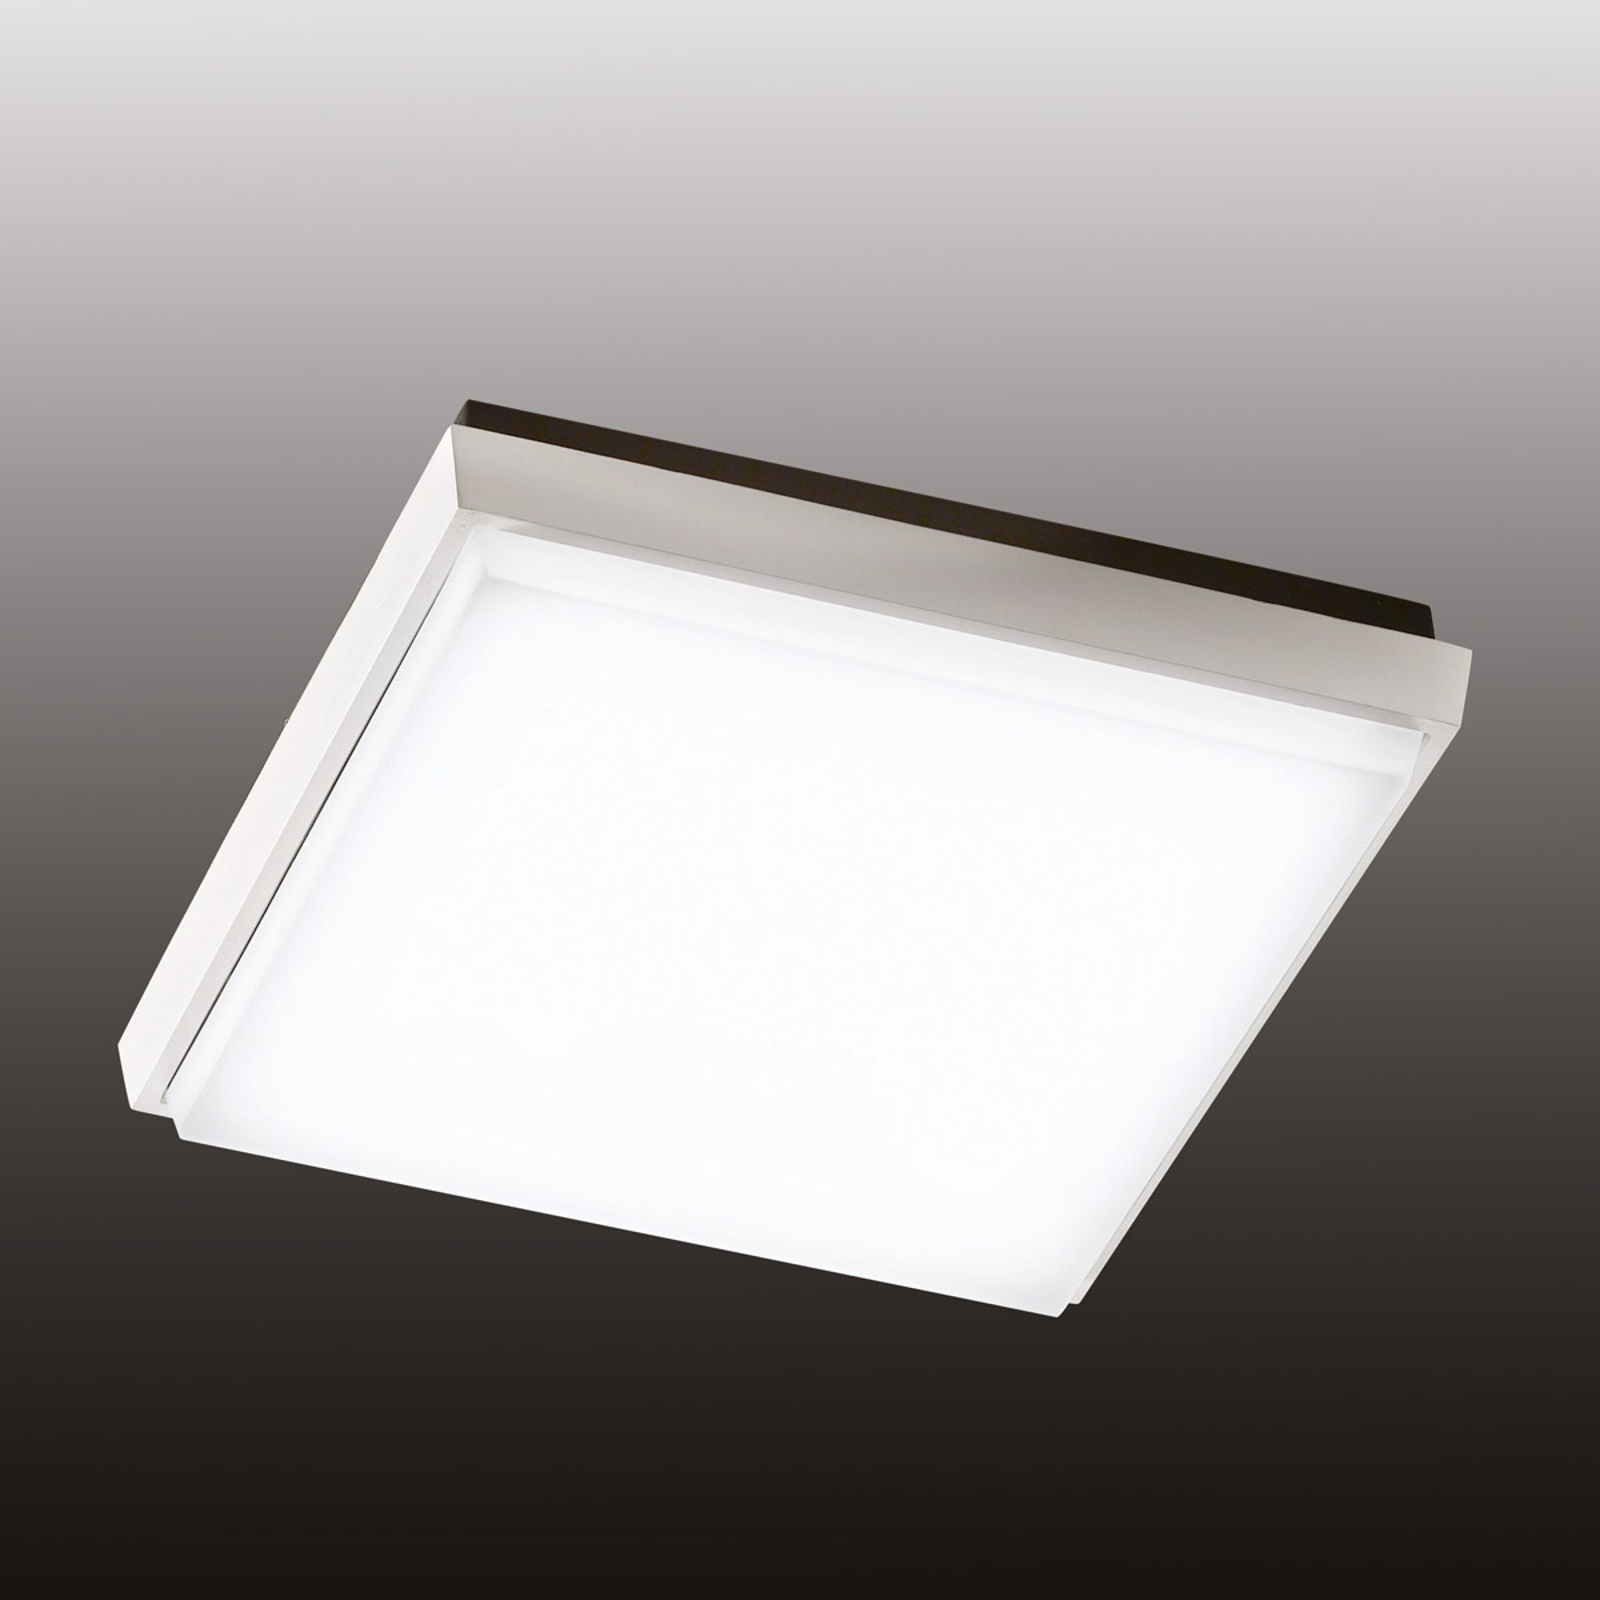 Square Desdy LED outdoor light_3502511_1